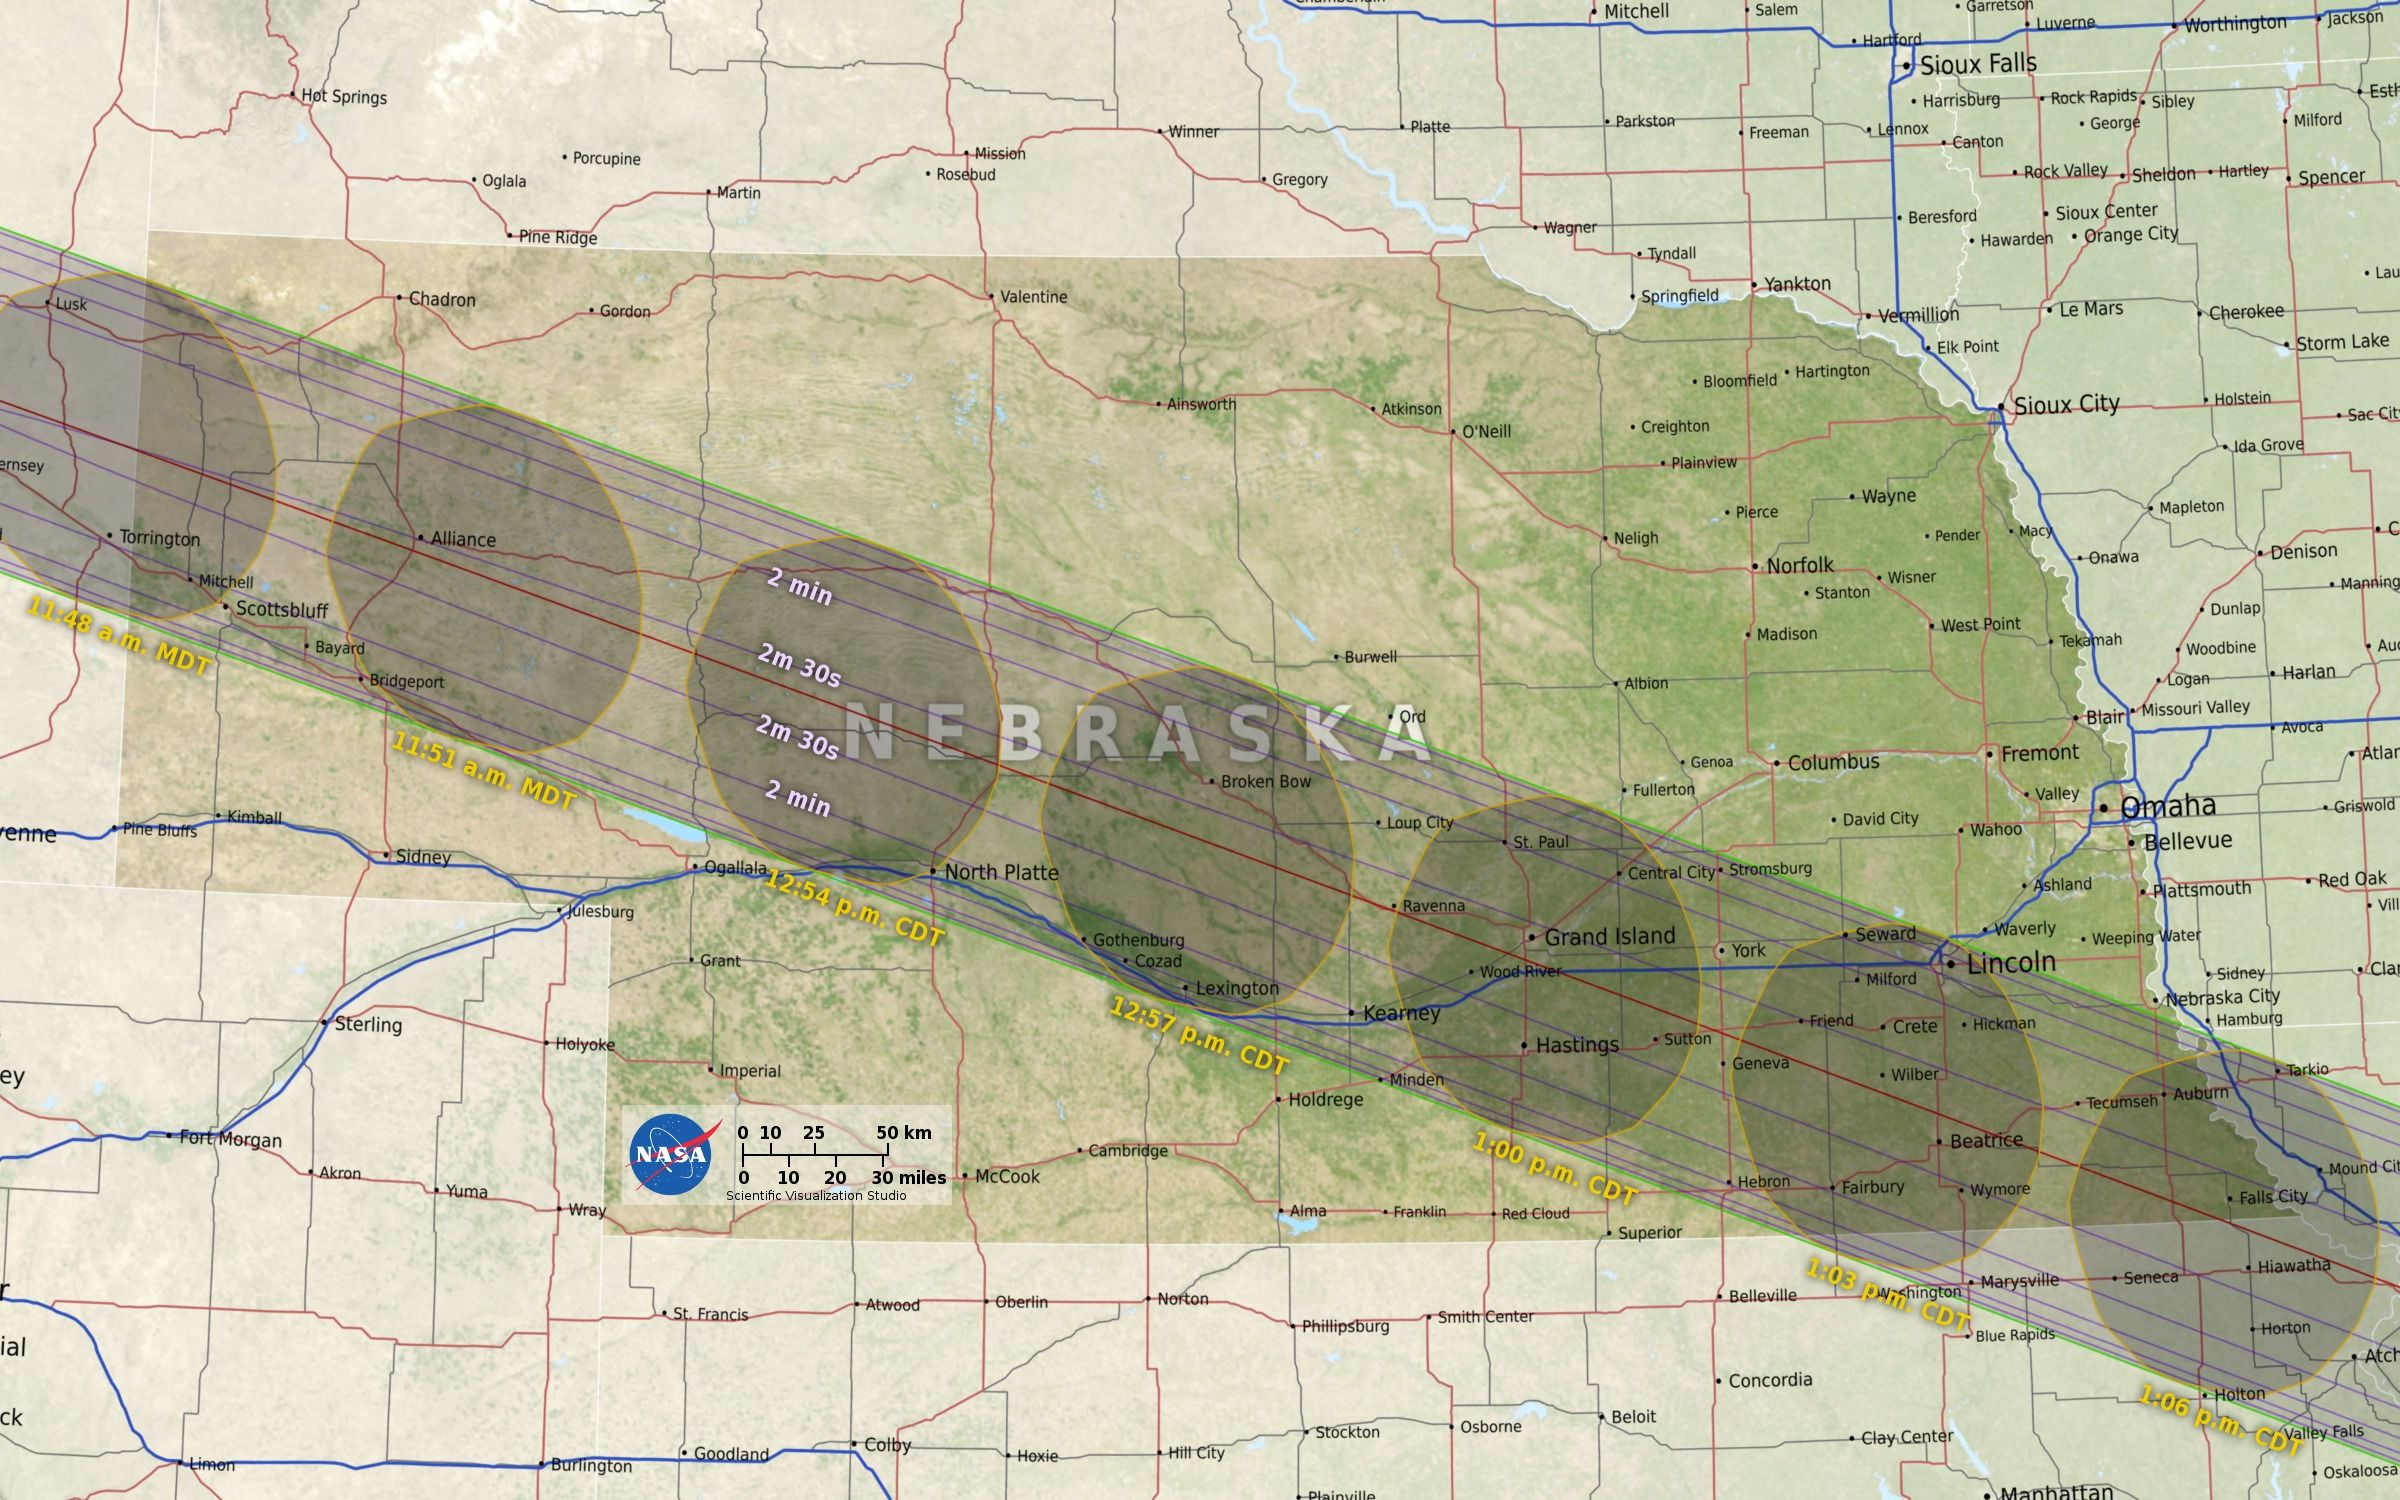 Path of the moon's shadow across Nebraska on August 21, 2017.  Image courtesy of NASA.